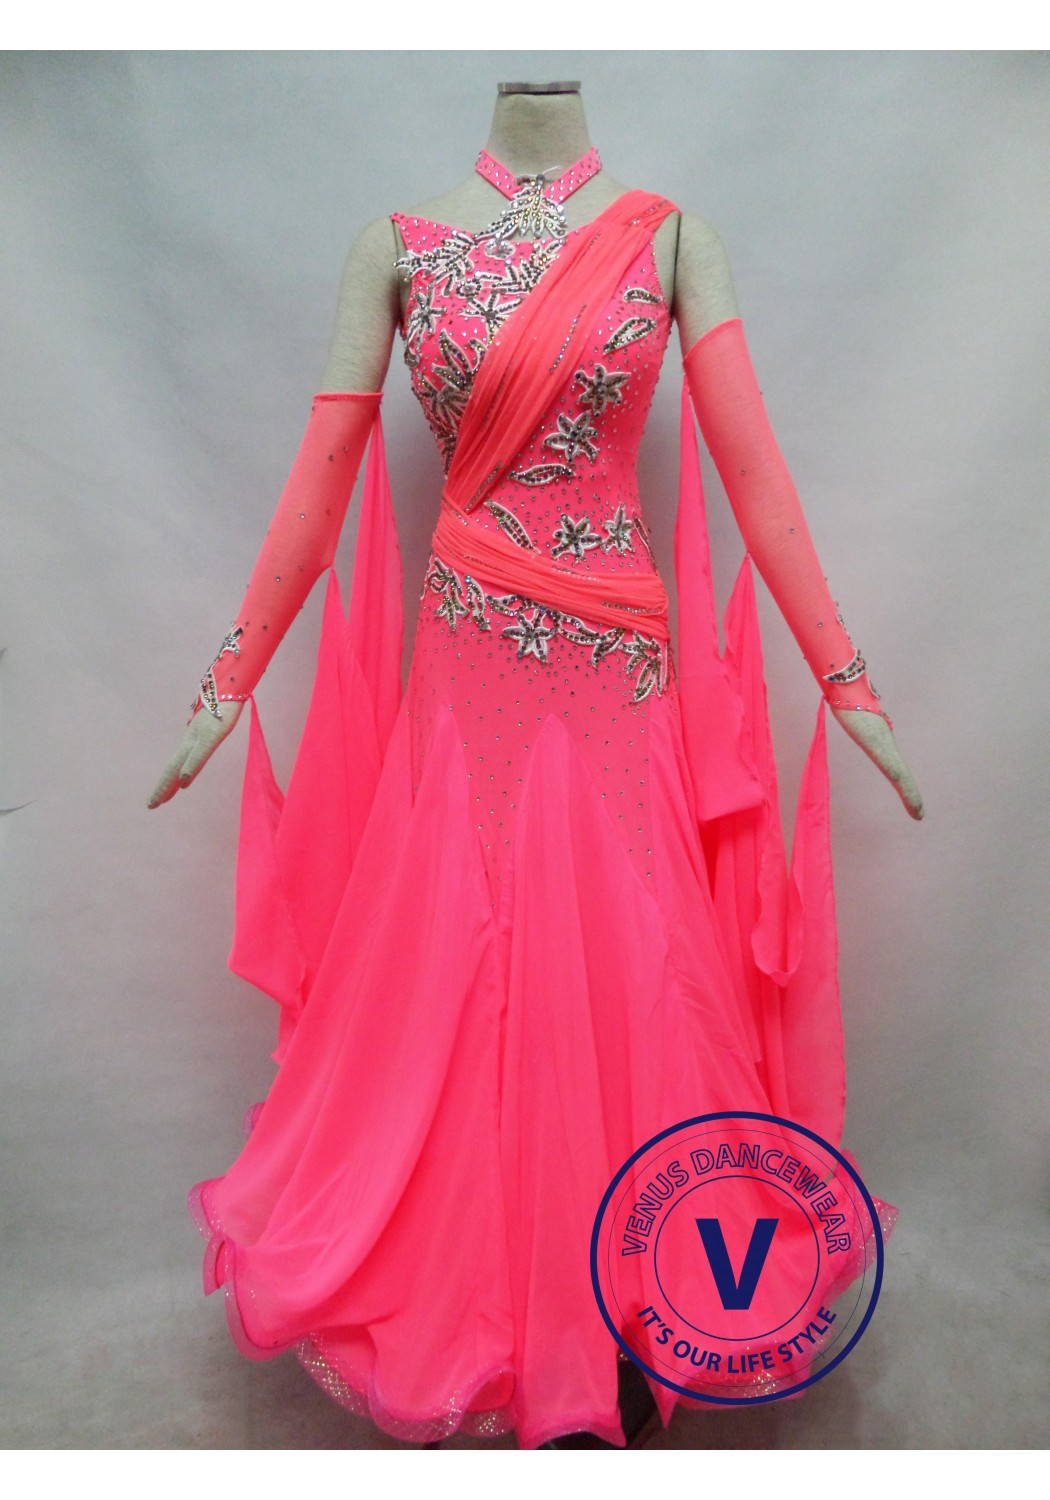 Dark Pink Competition Ballroom Dance Dress